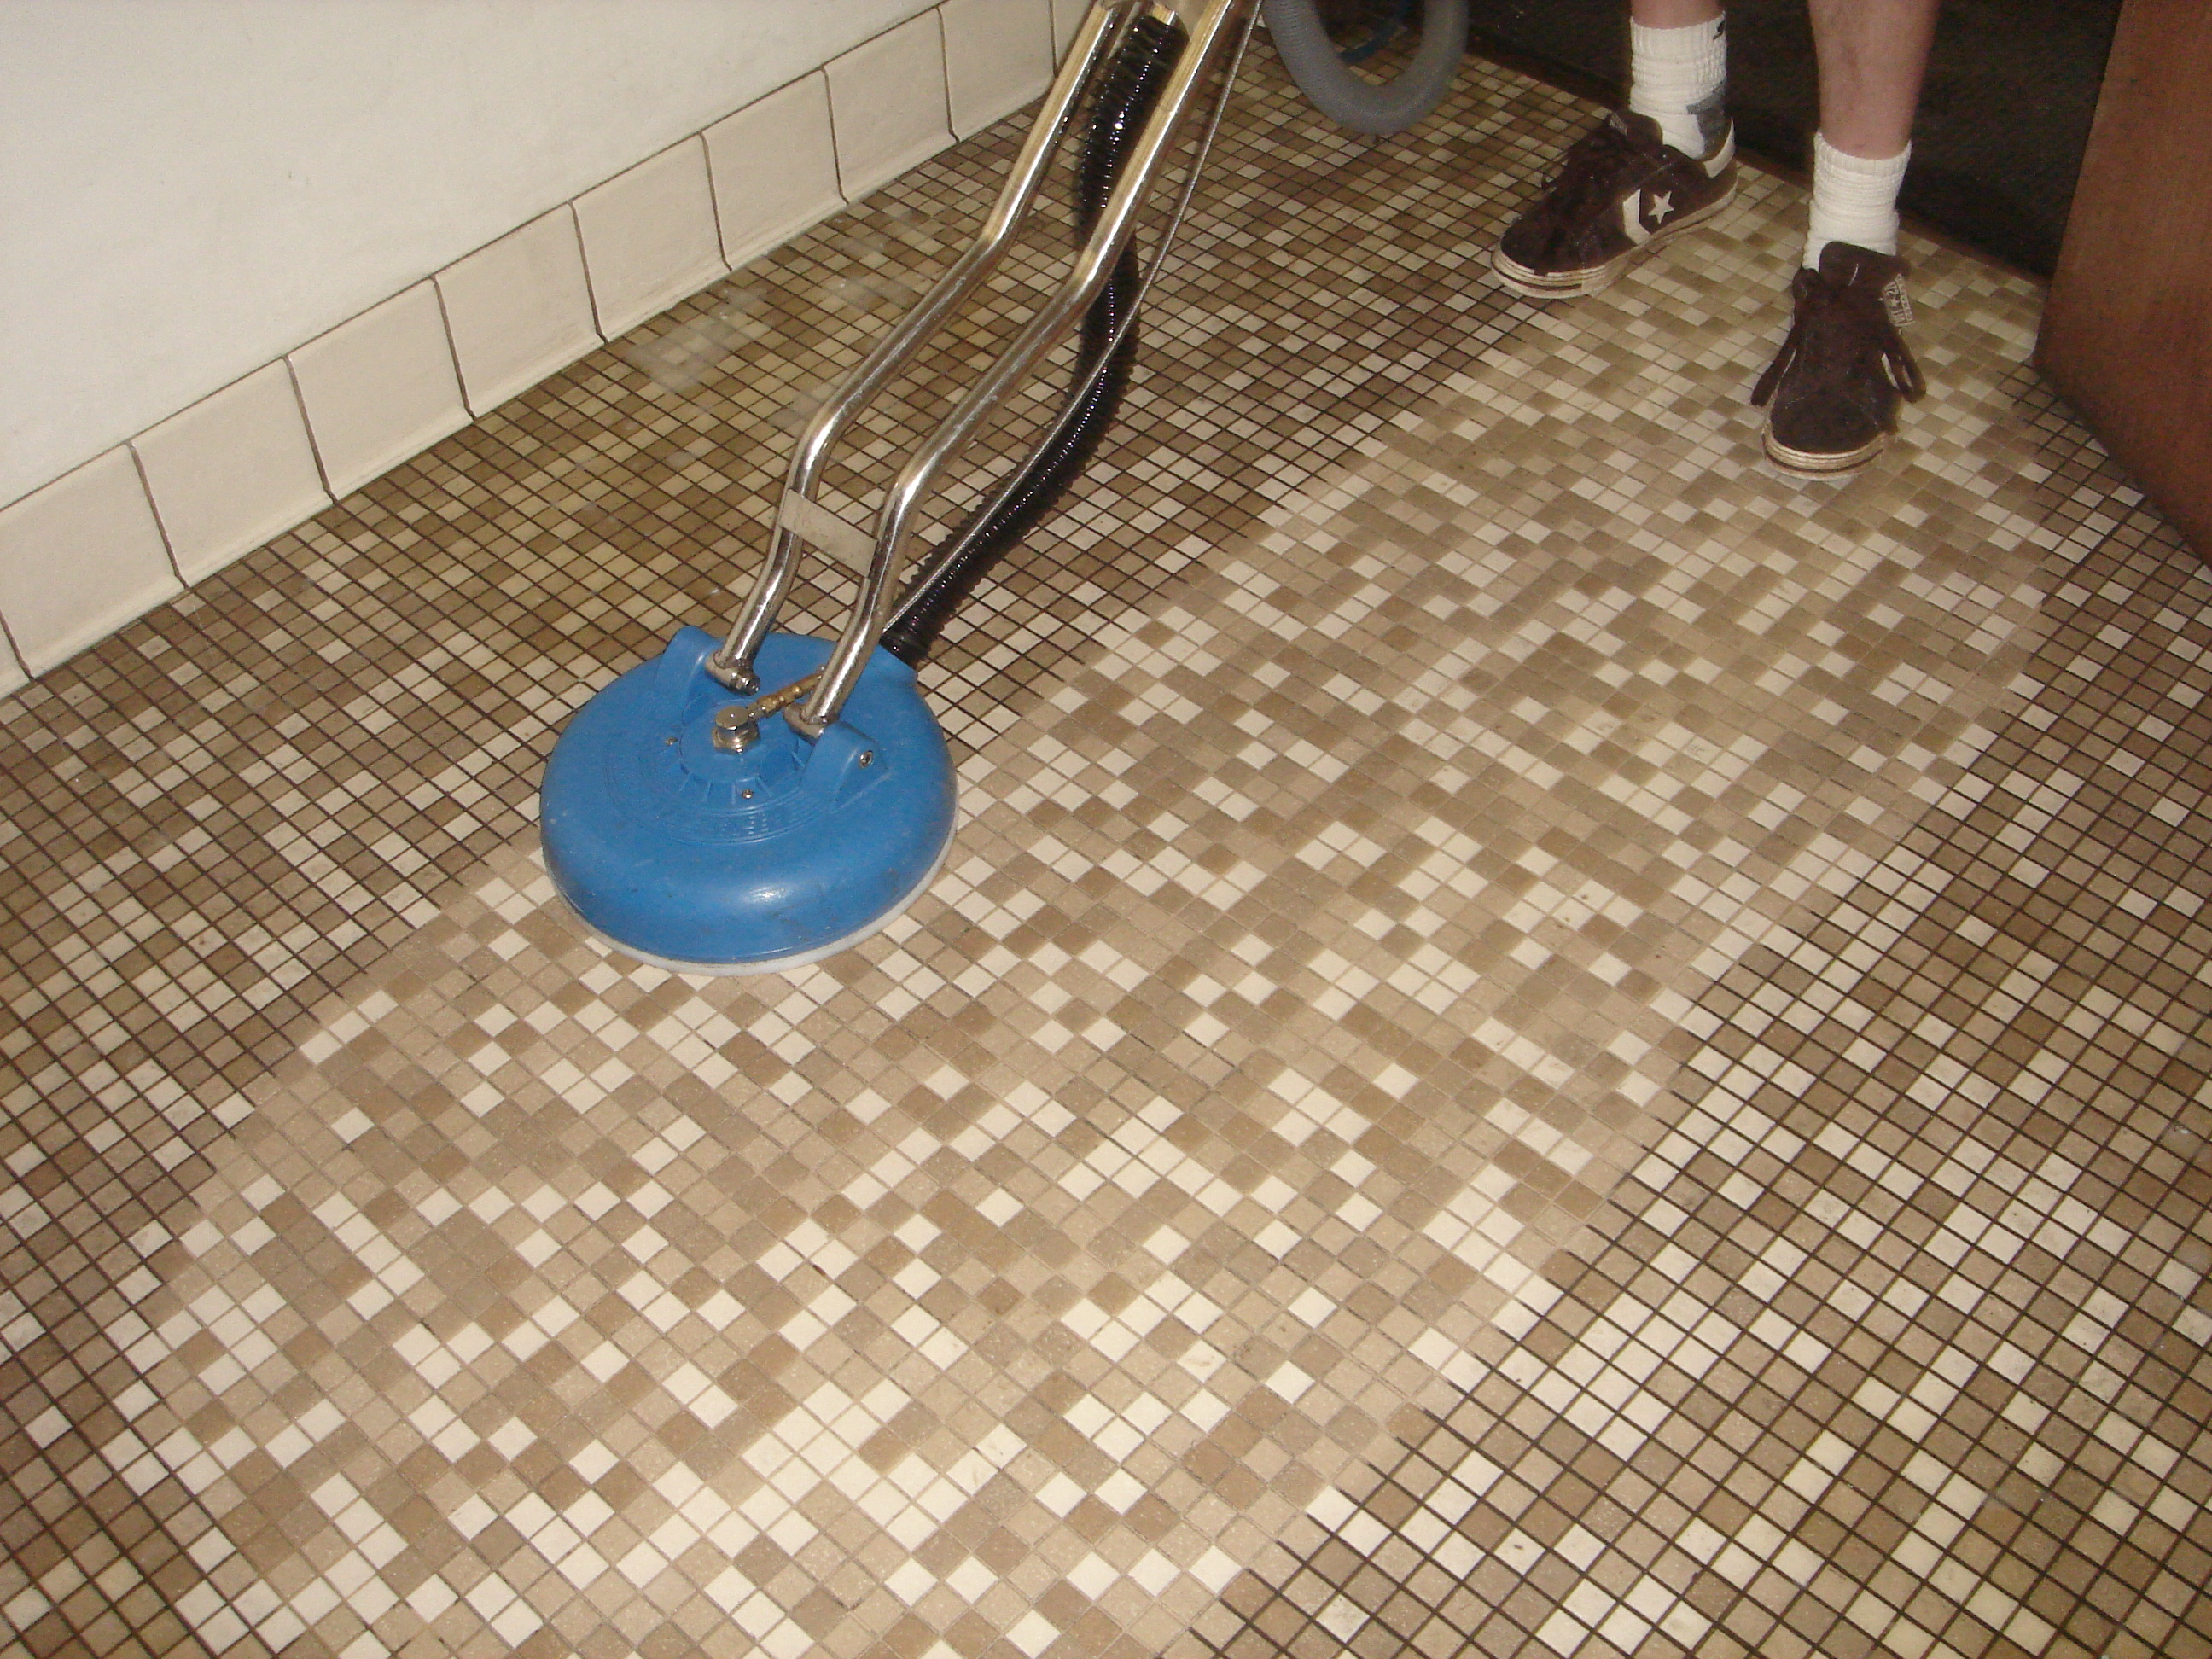 Advanced Tile Grout Cleaning Milwaukee Wi 53209 Angies List